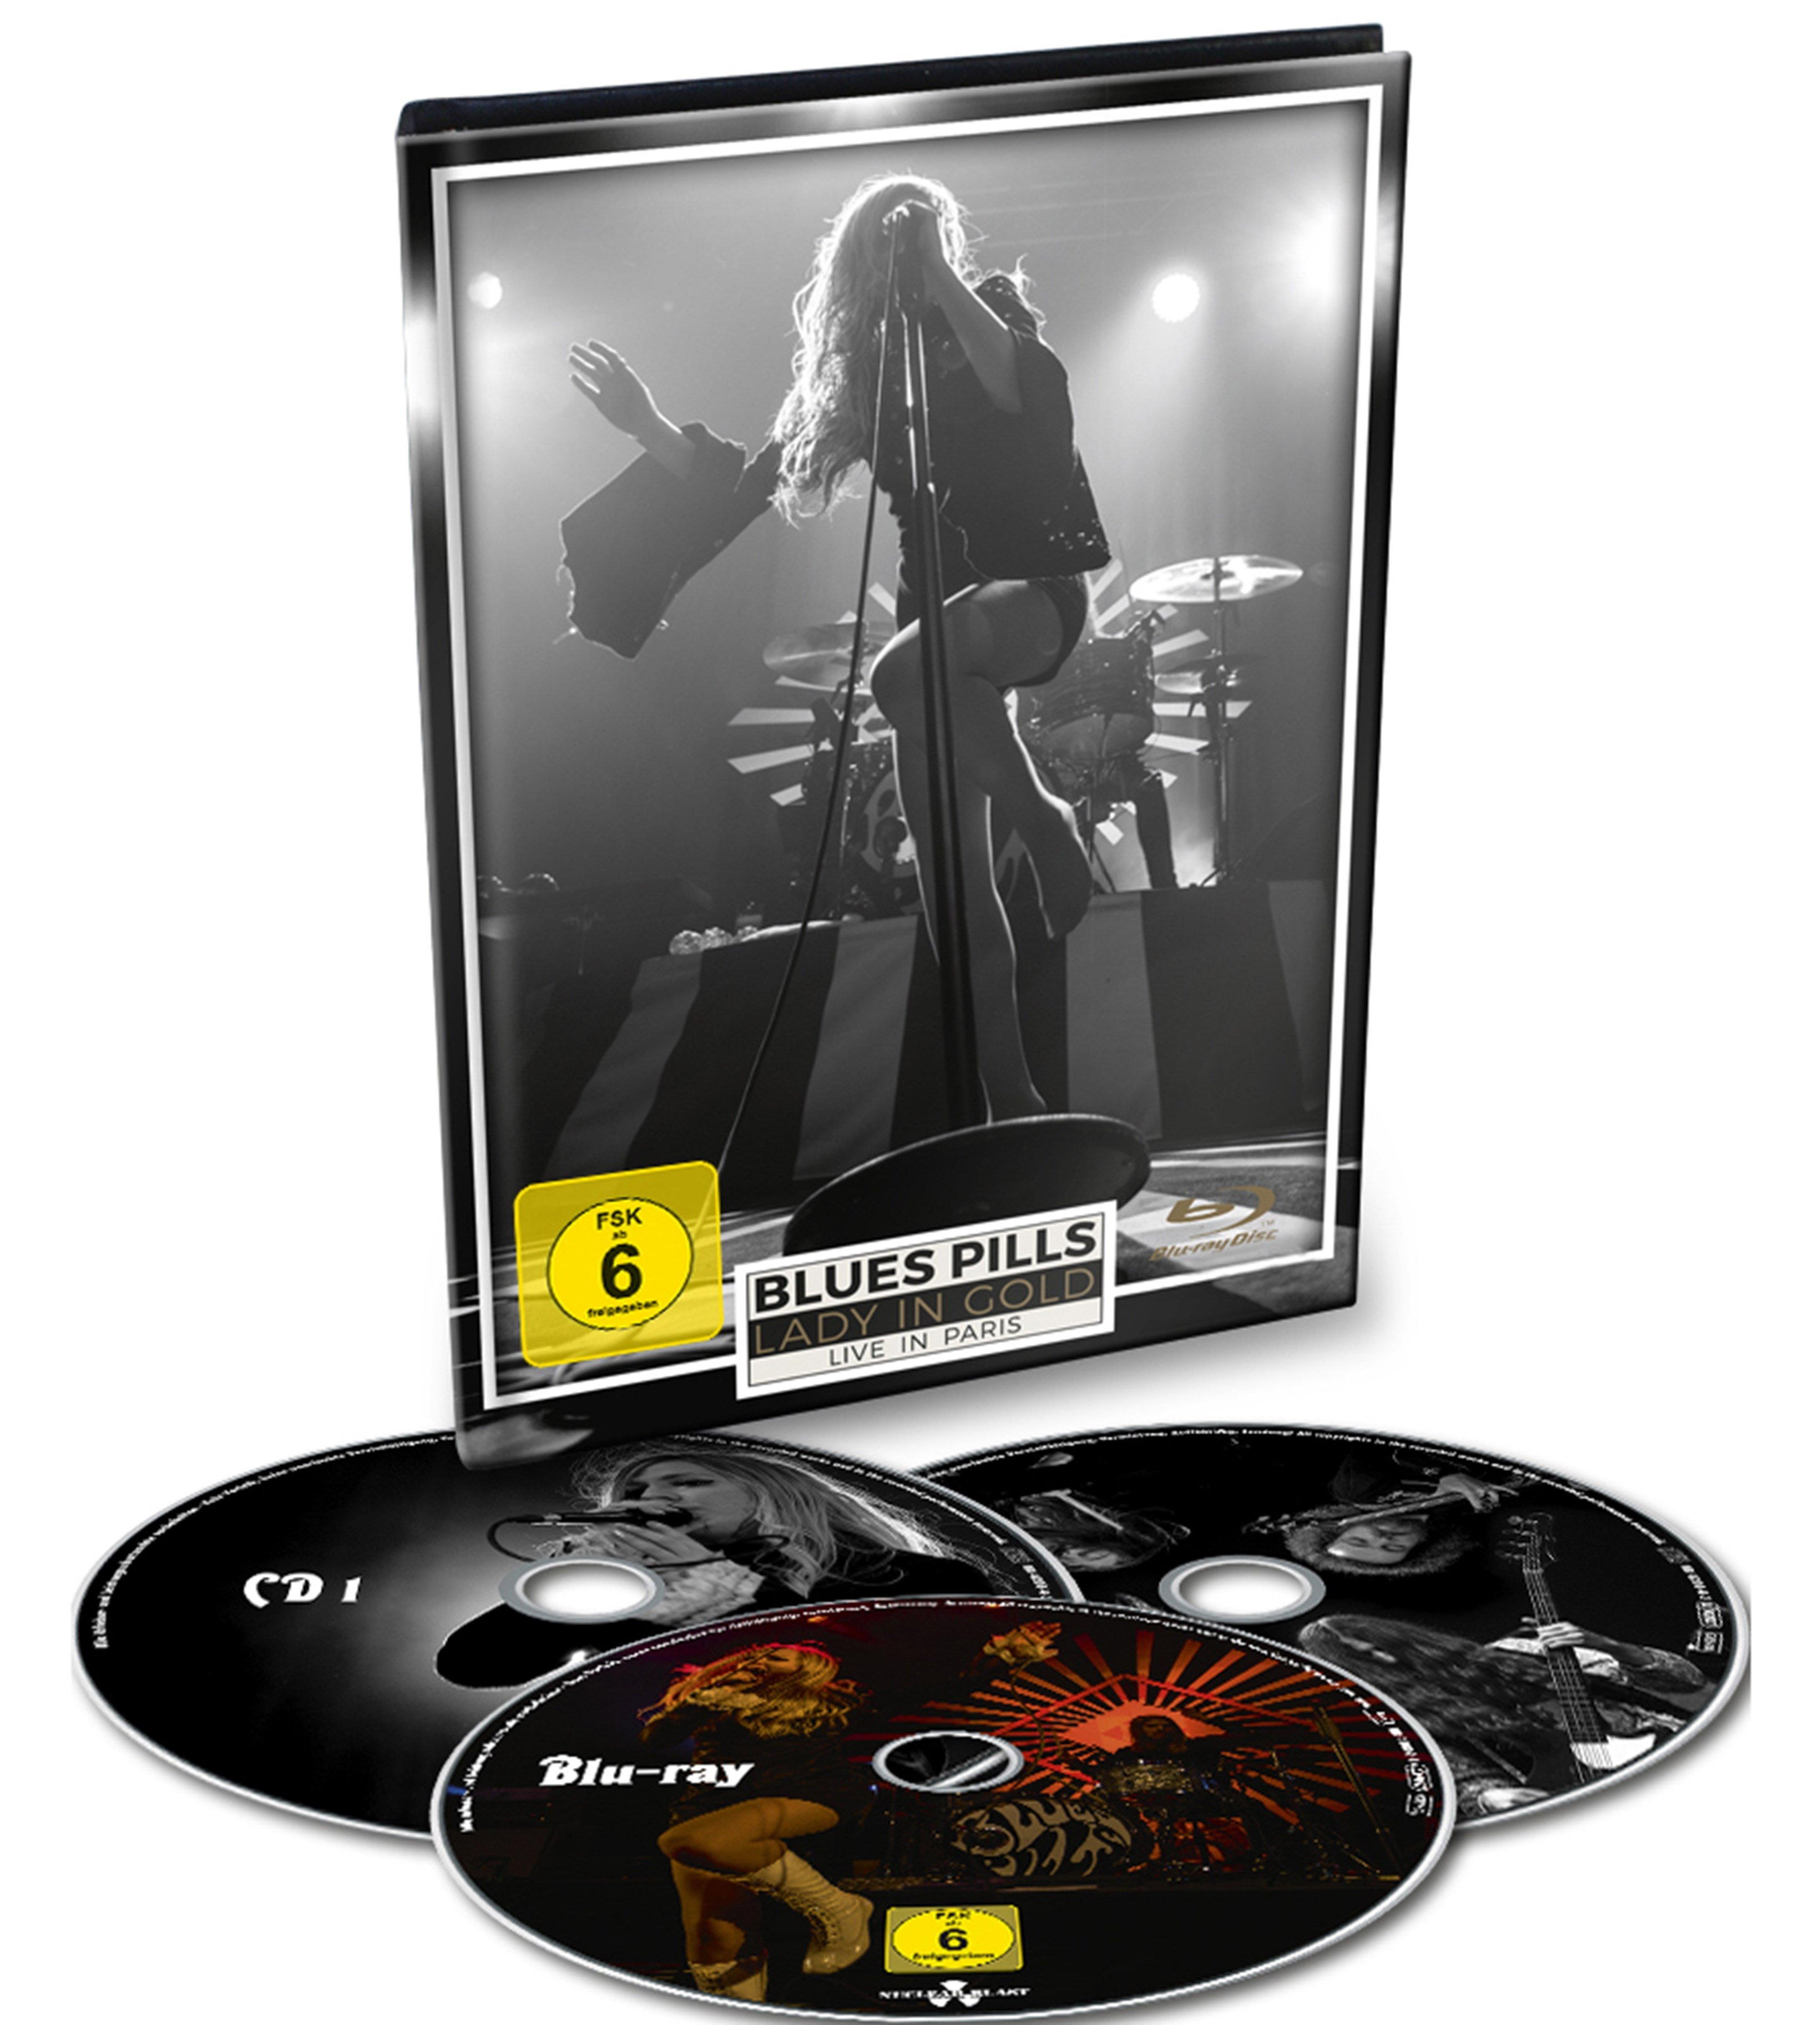 Blues Pills: Lady in Gold - Live in Paris - 1